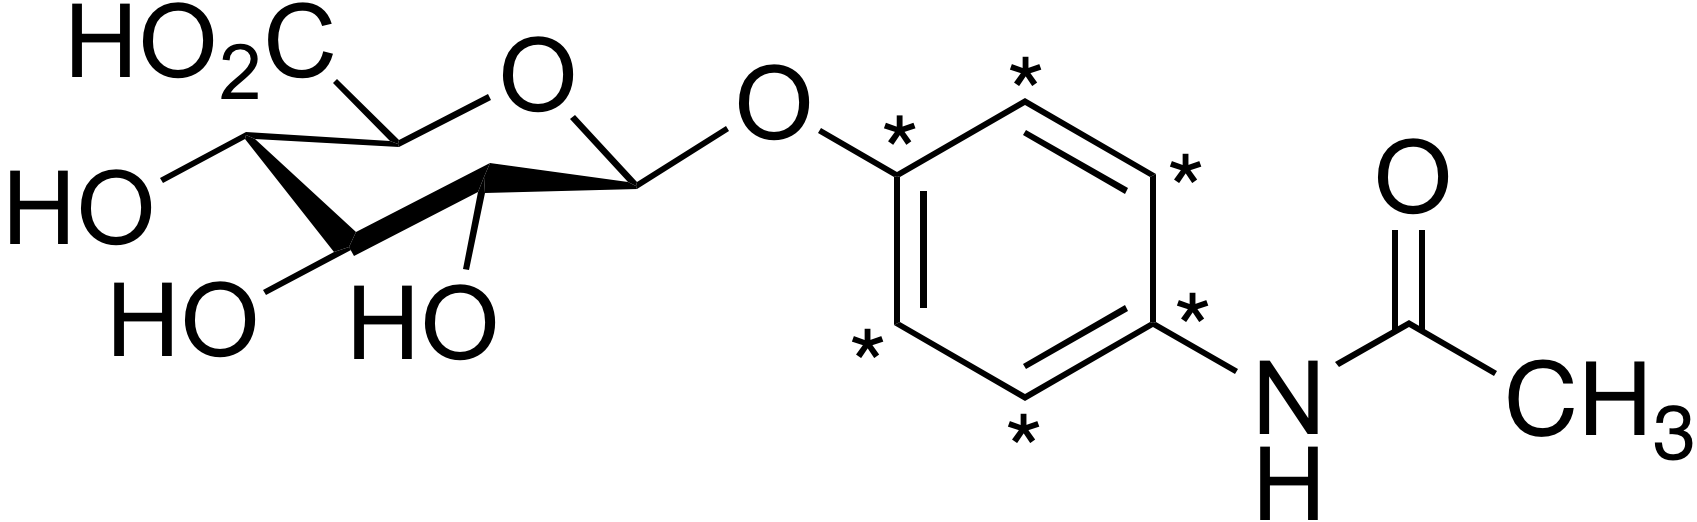 Acetaminophen-<sup>13</sup>C<sub>6</sub> β-D-glucuronide